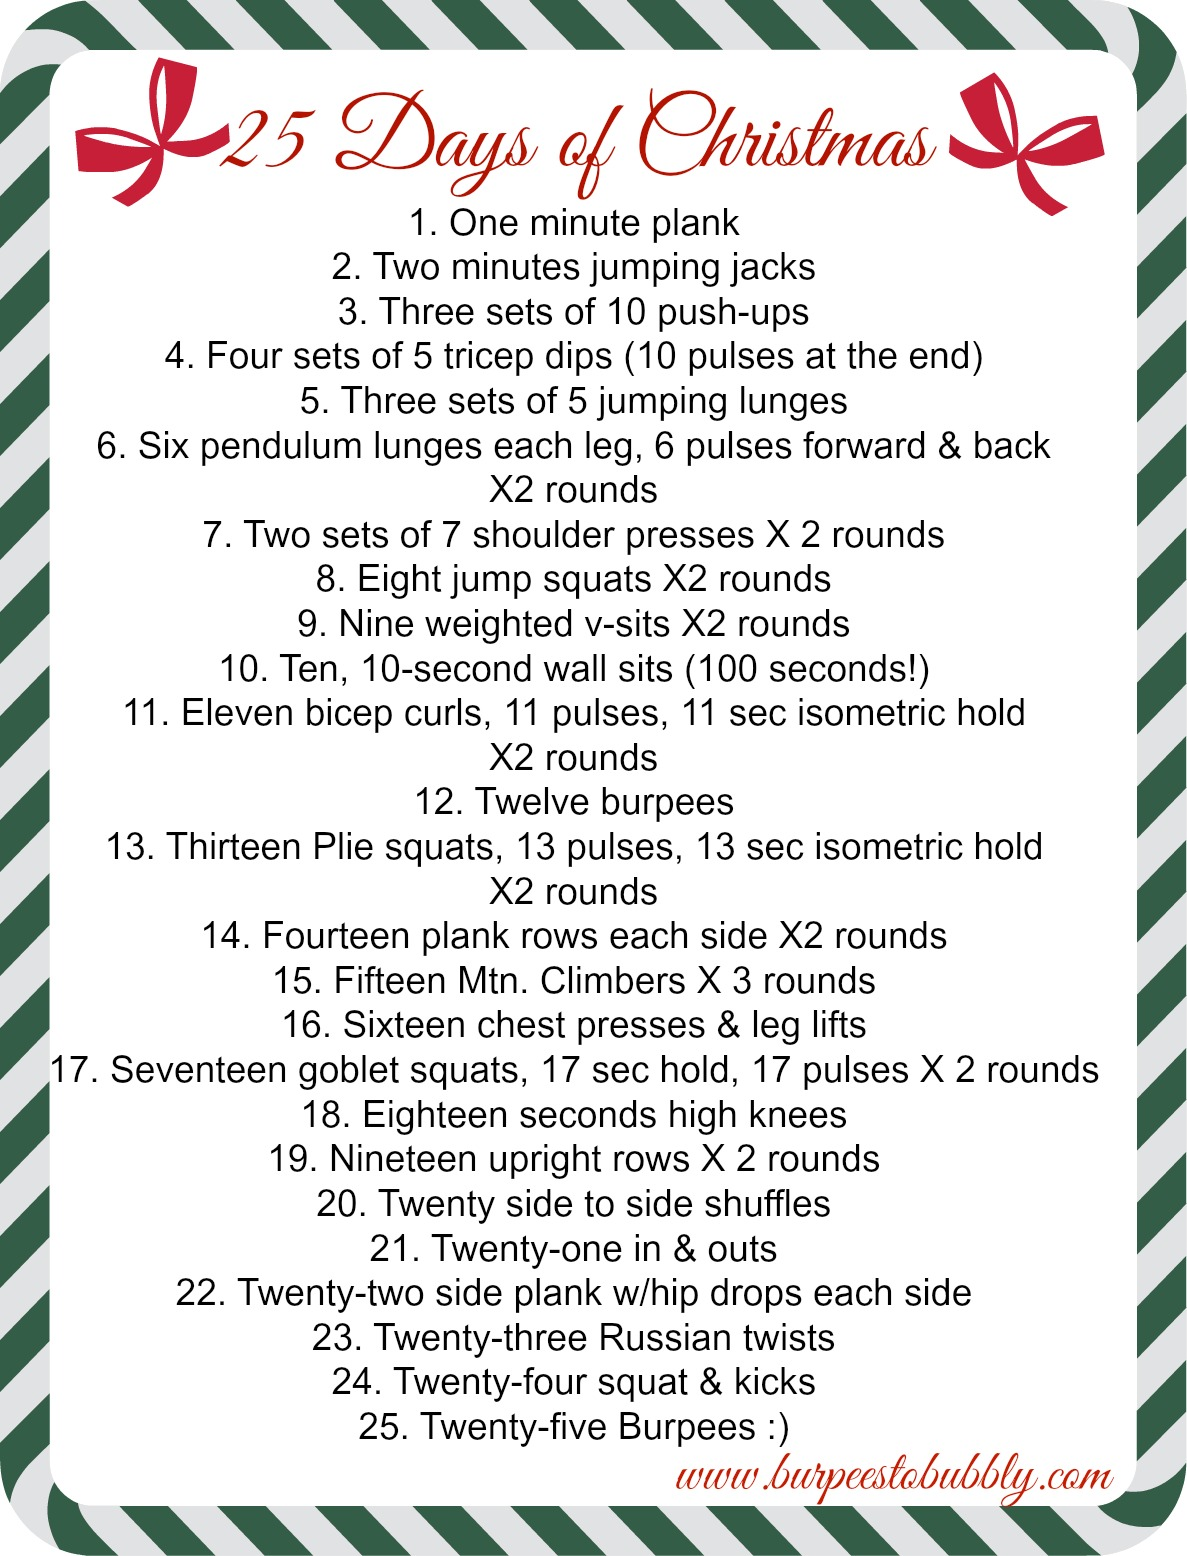 Workout Calendar Ideas : Friday things a days of christmas workout burpees